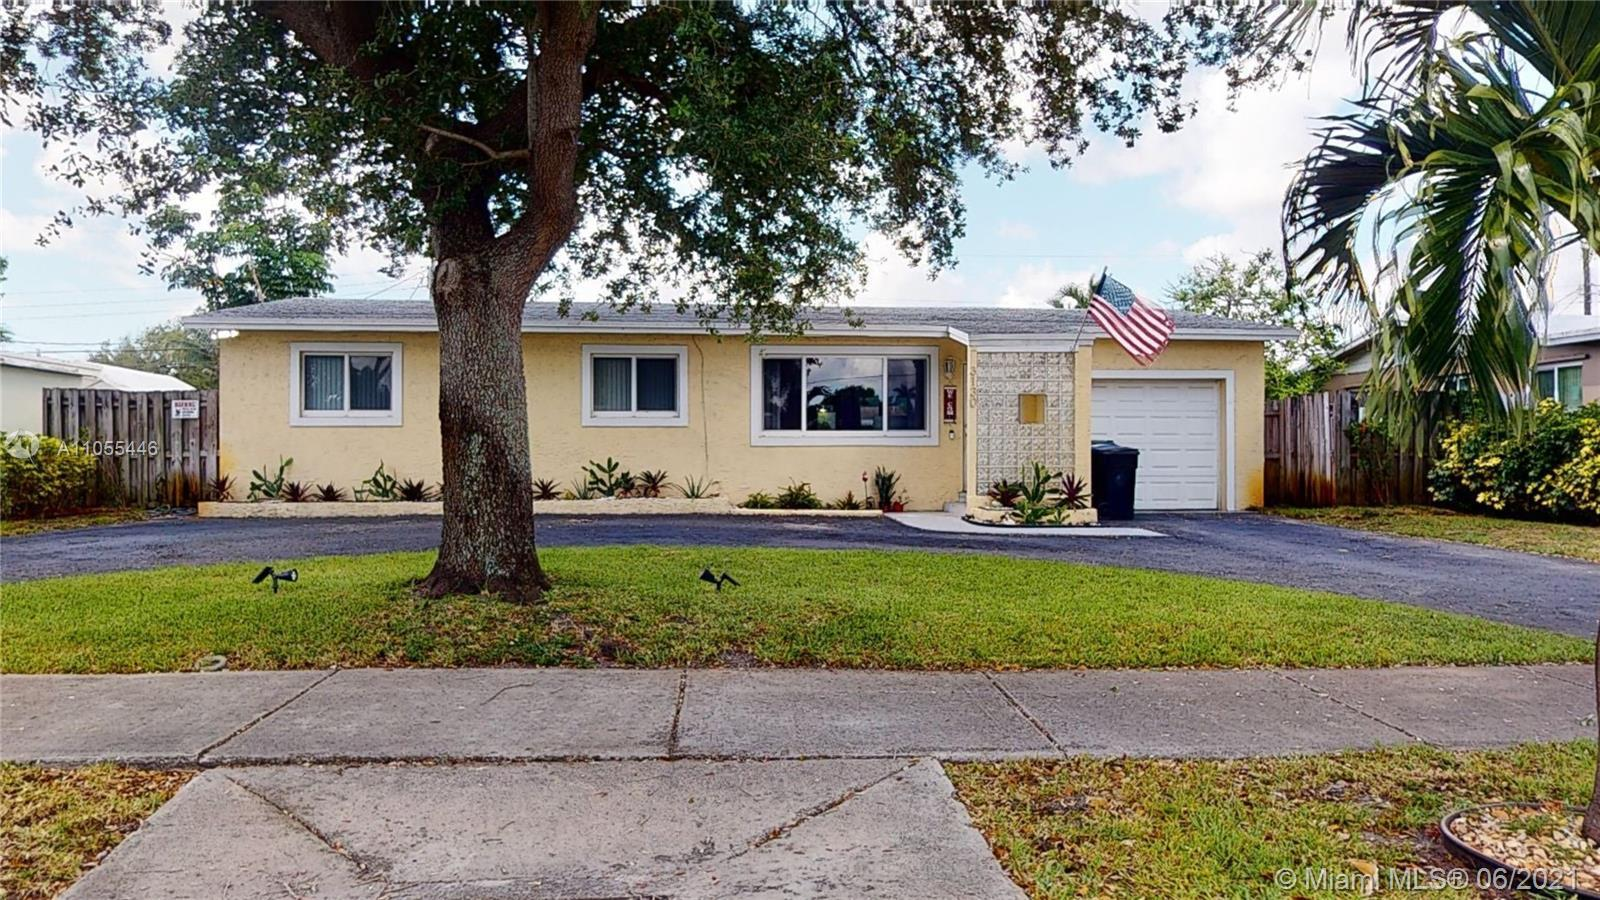 Welcome, Home! You have found the perfect Riverland house on a great street! Move-in ready with a ne